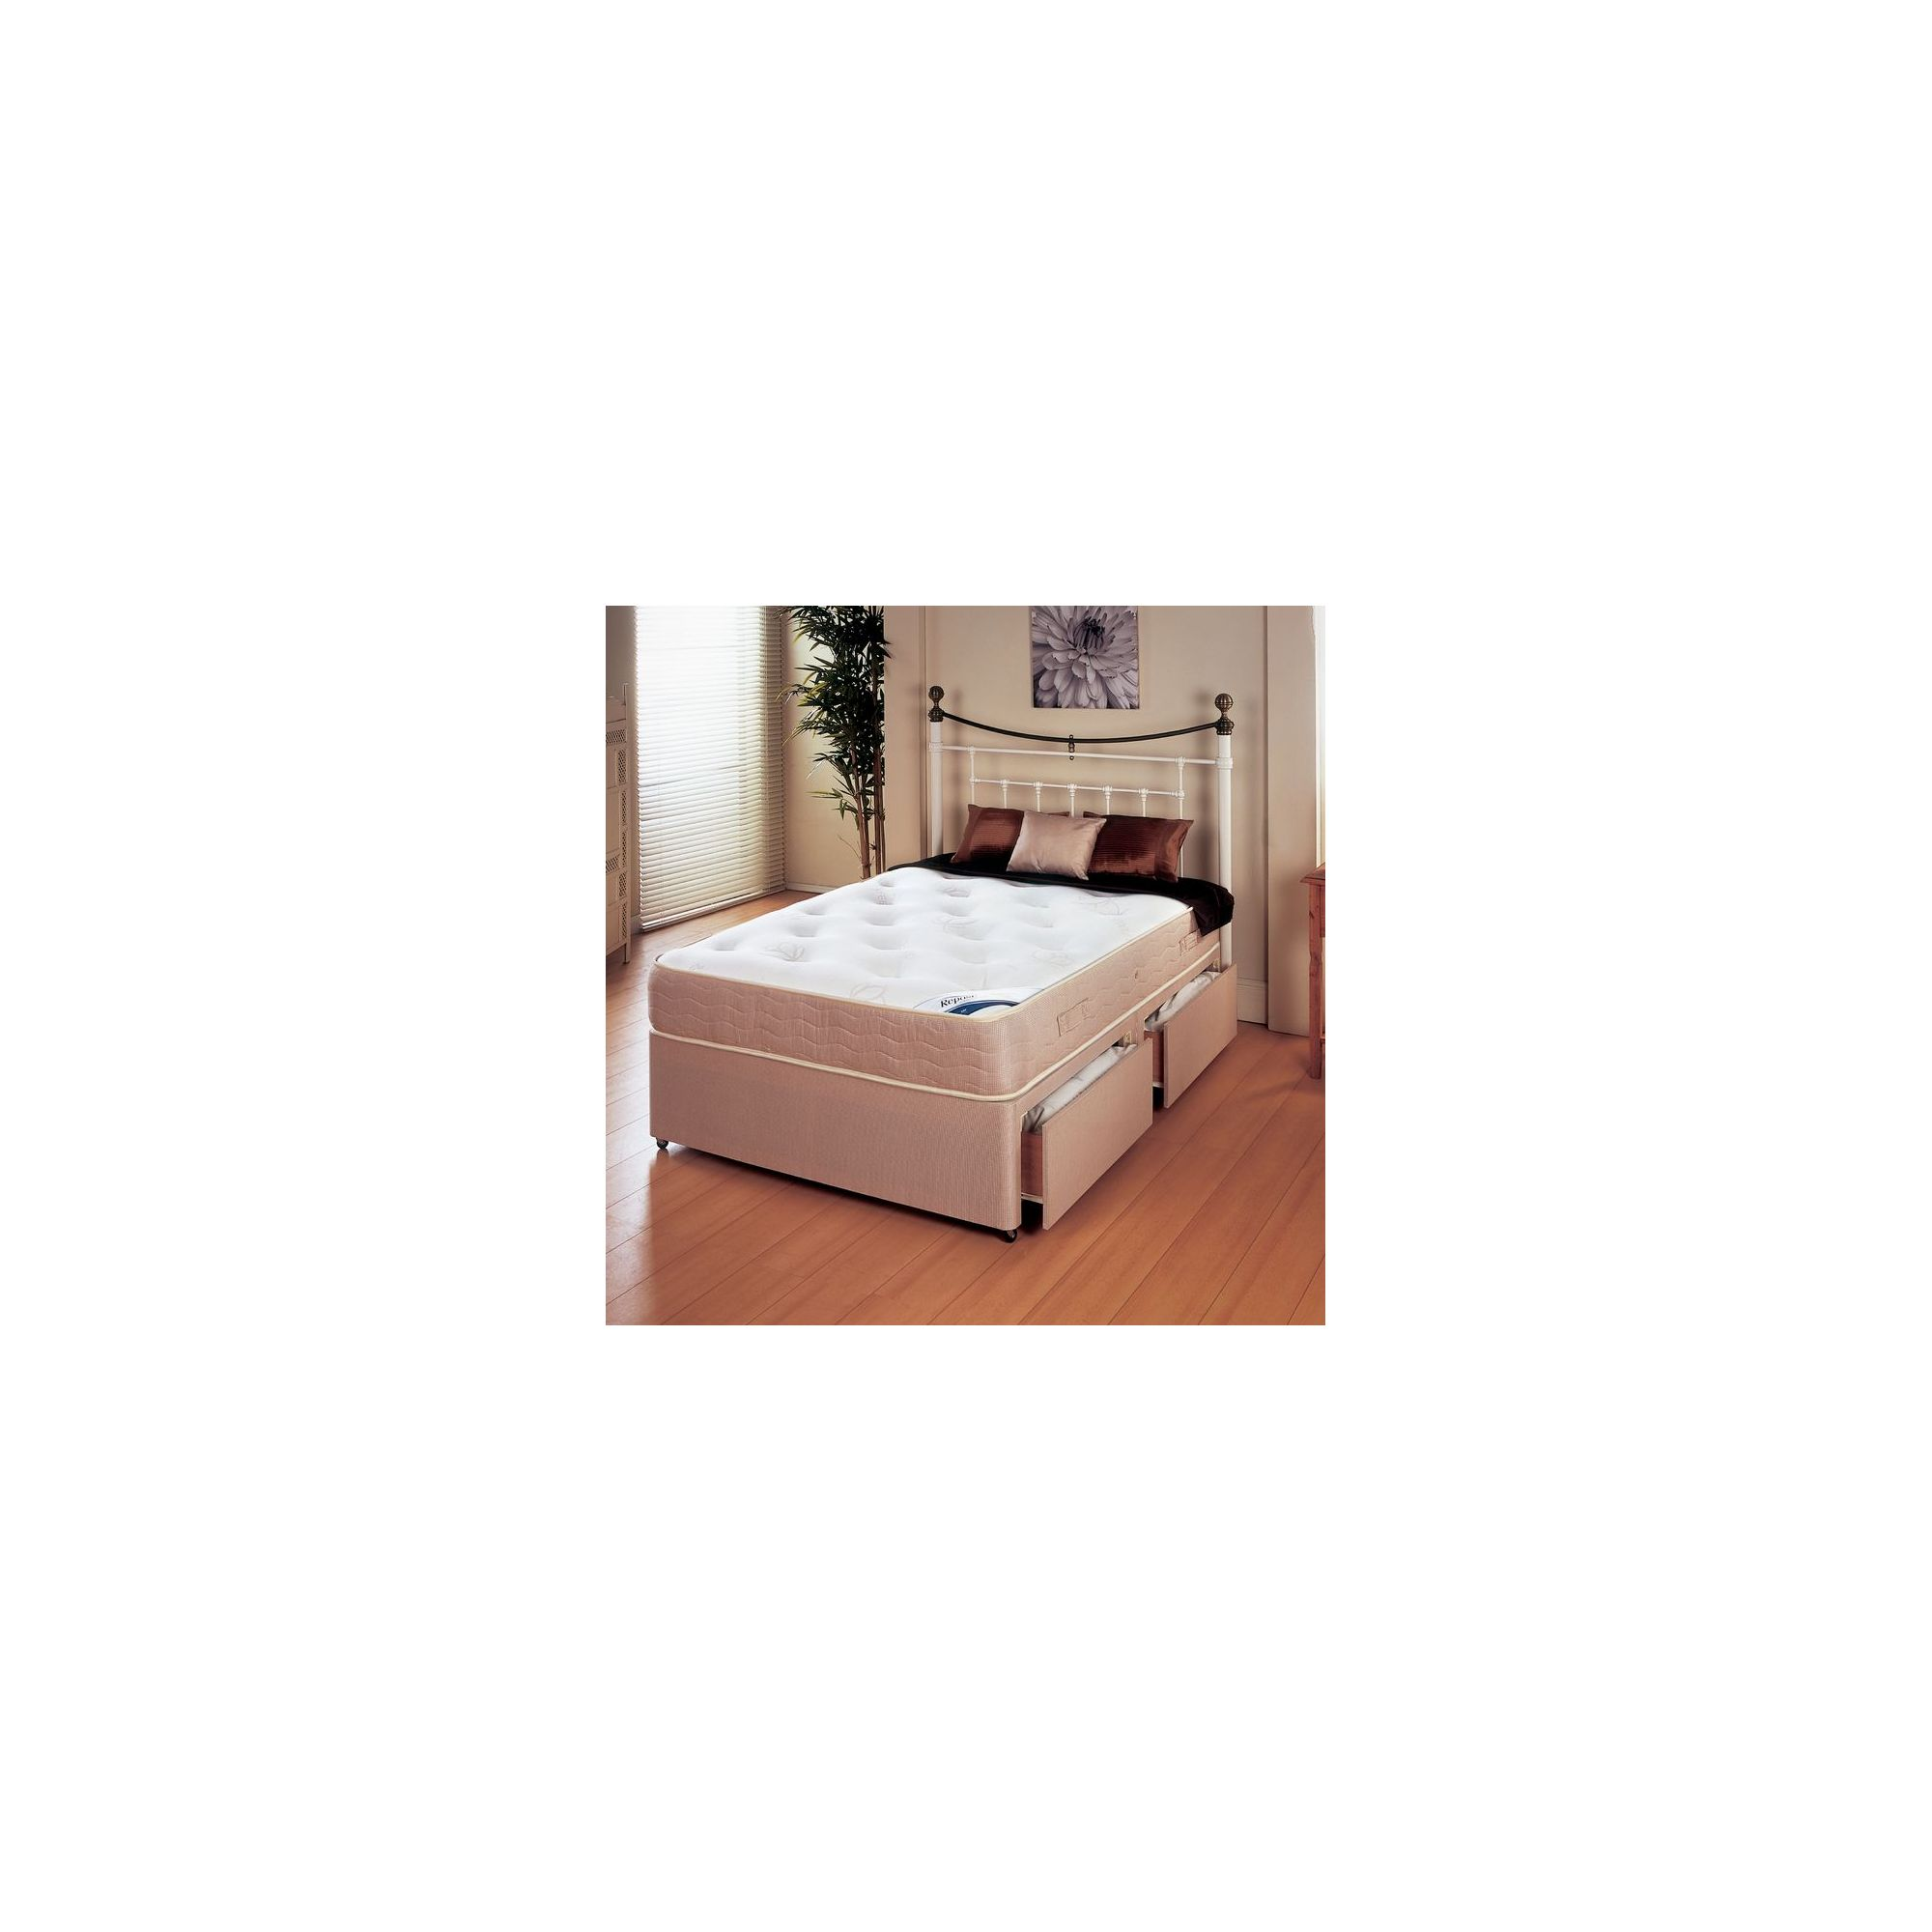 Repose New Princess 1000 Platform Set - Small Single/Single / 0 Drawer at Tesco Direct